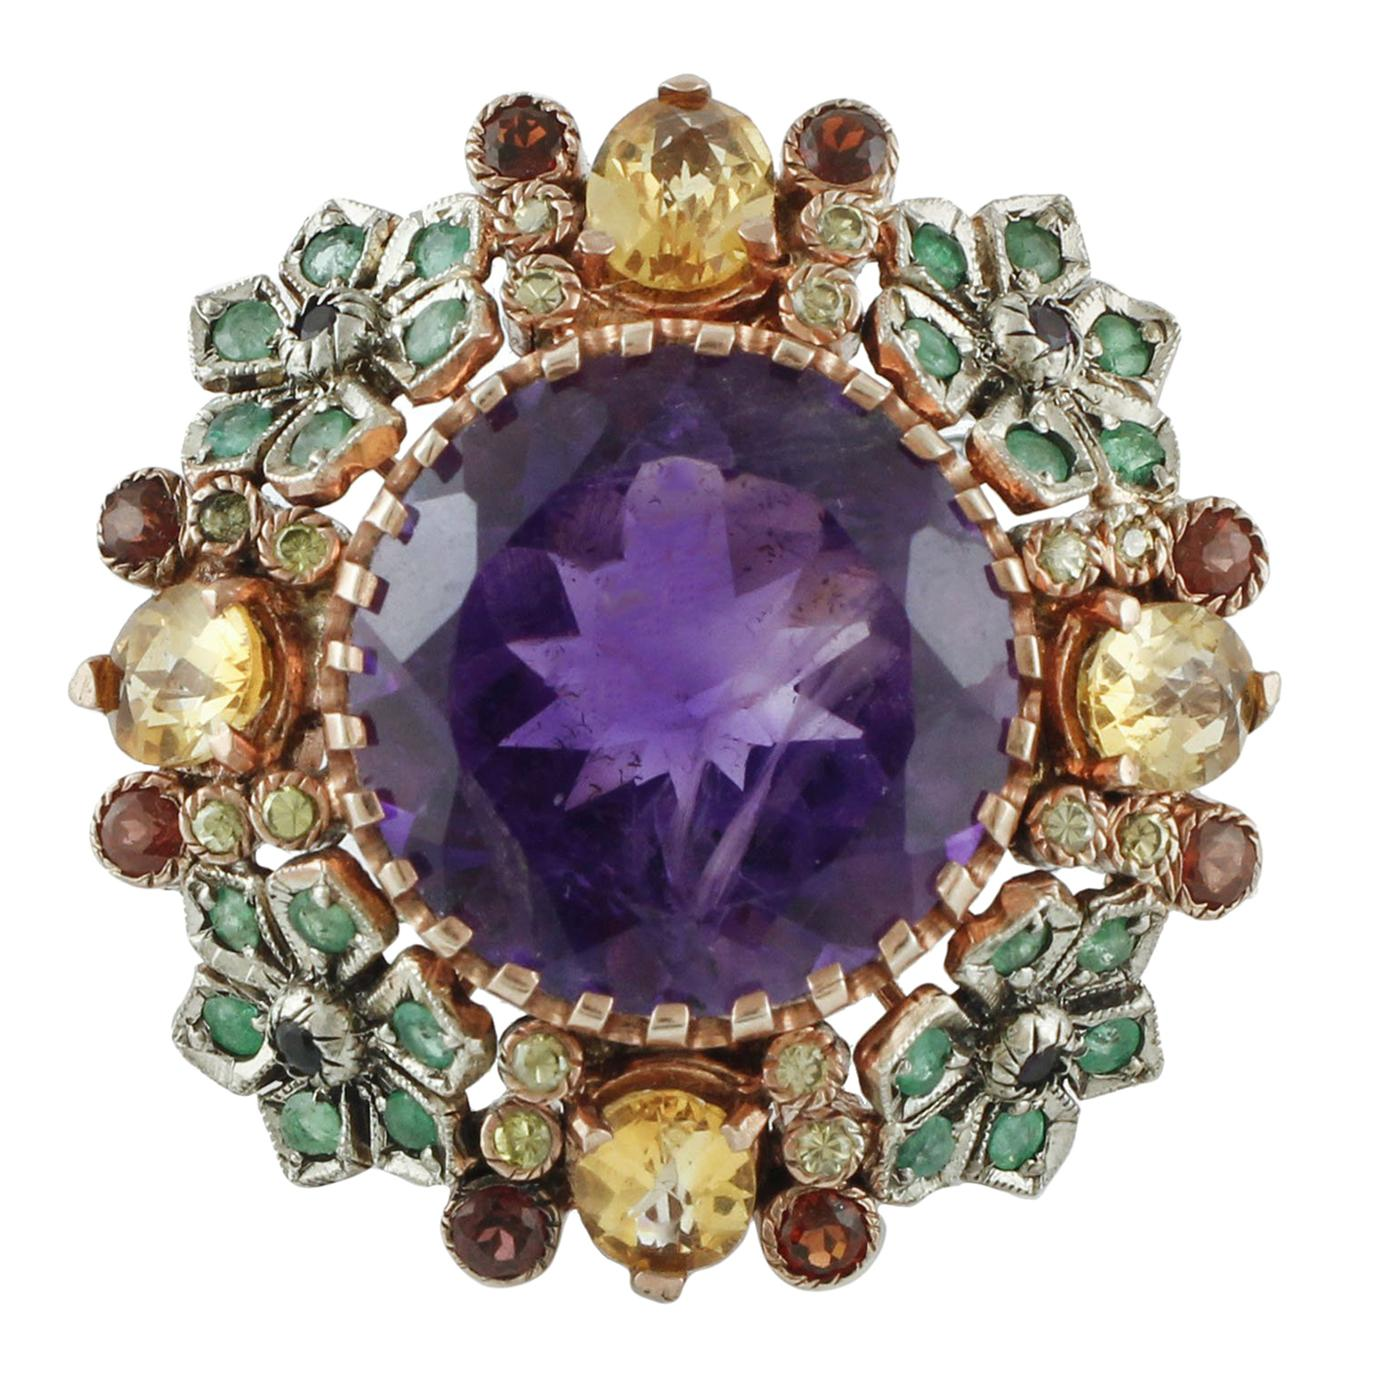 Diamonds Emeralds Amethysts Topazes Garnets Rose Gold and Silver Cocktail Ring